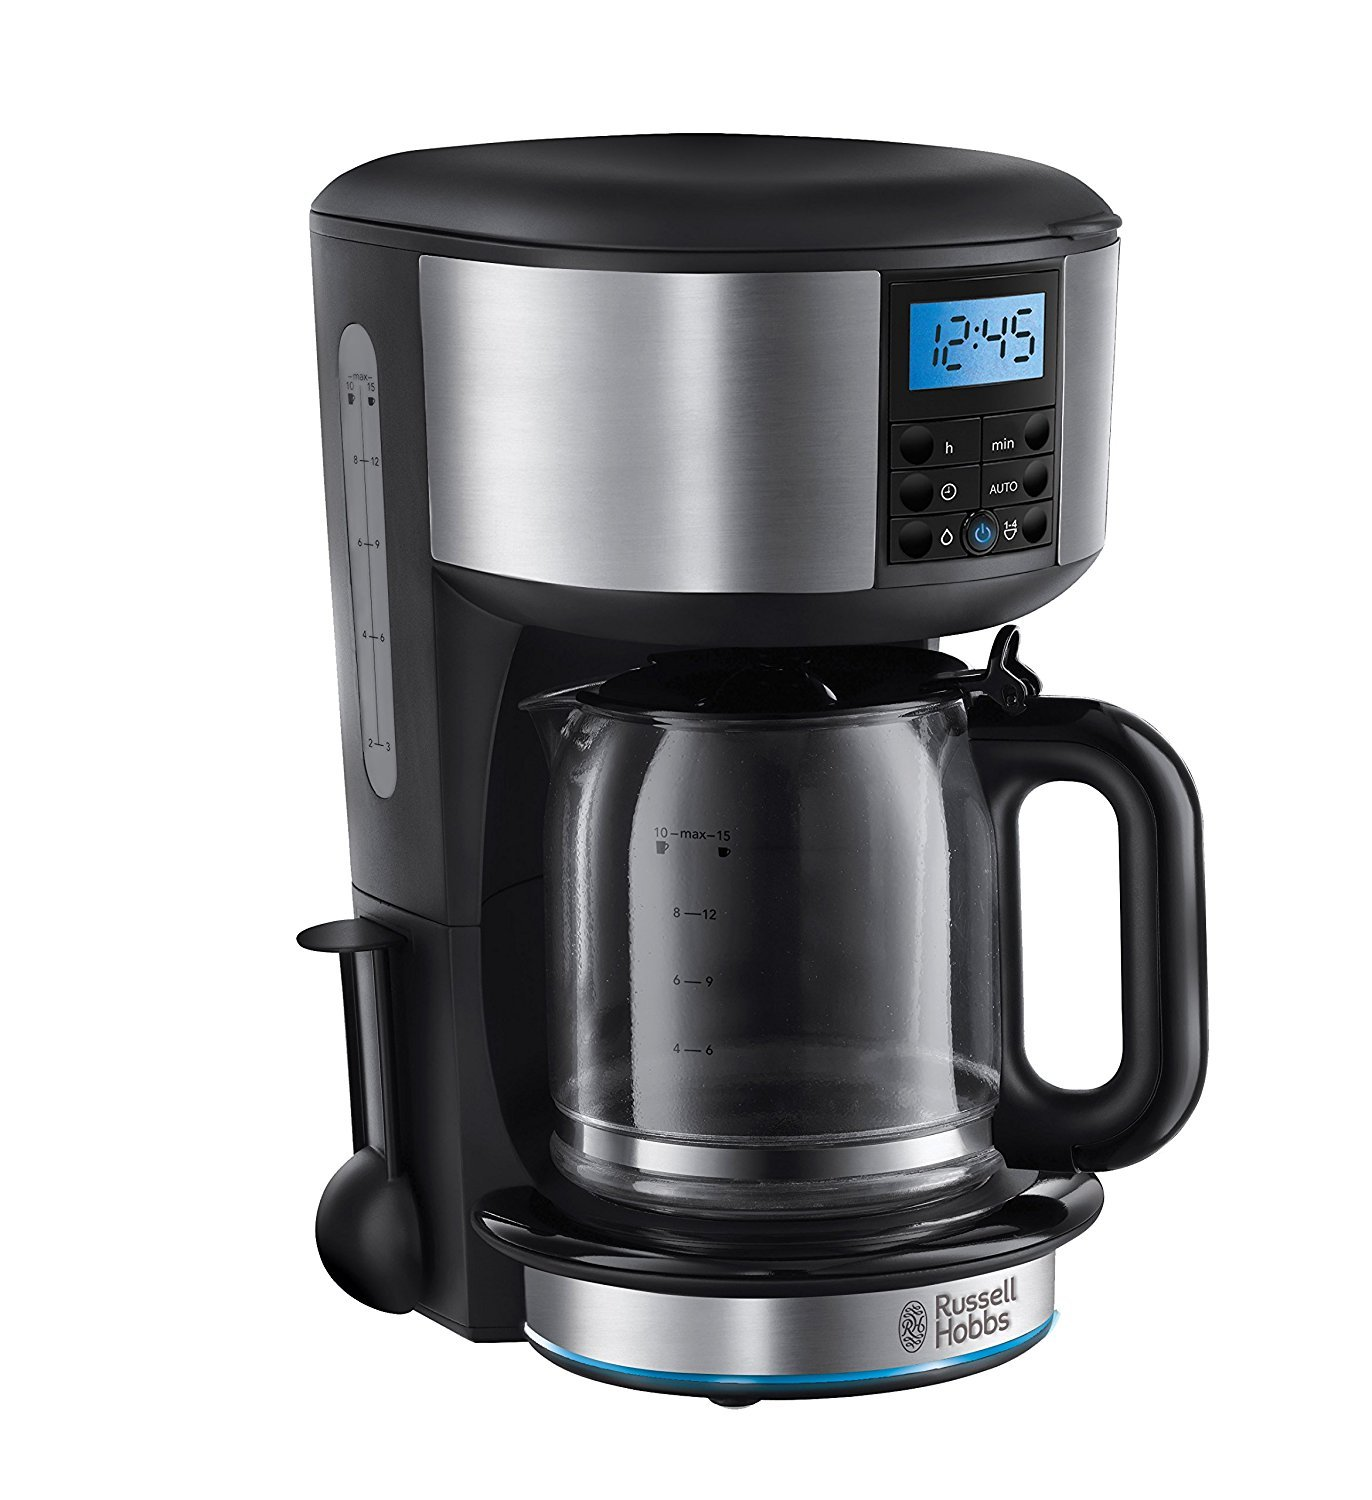 Russell Hobbs Buckingham 1.25 L Filter Coffee Machine 20680 - Black and  Silver: Amazon.co.uk: Kitchen & Home